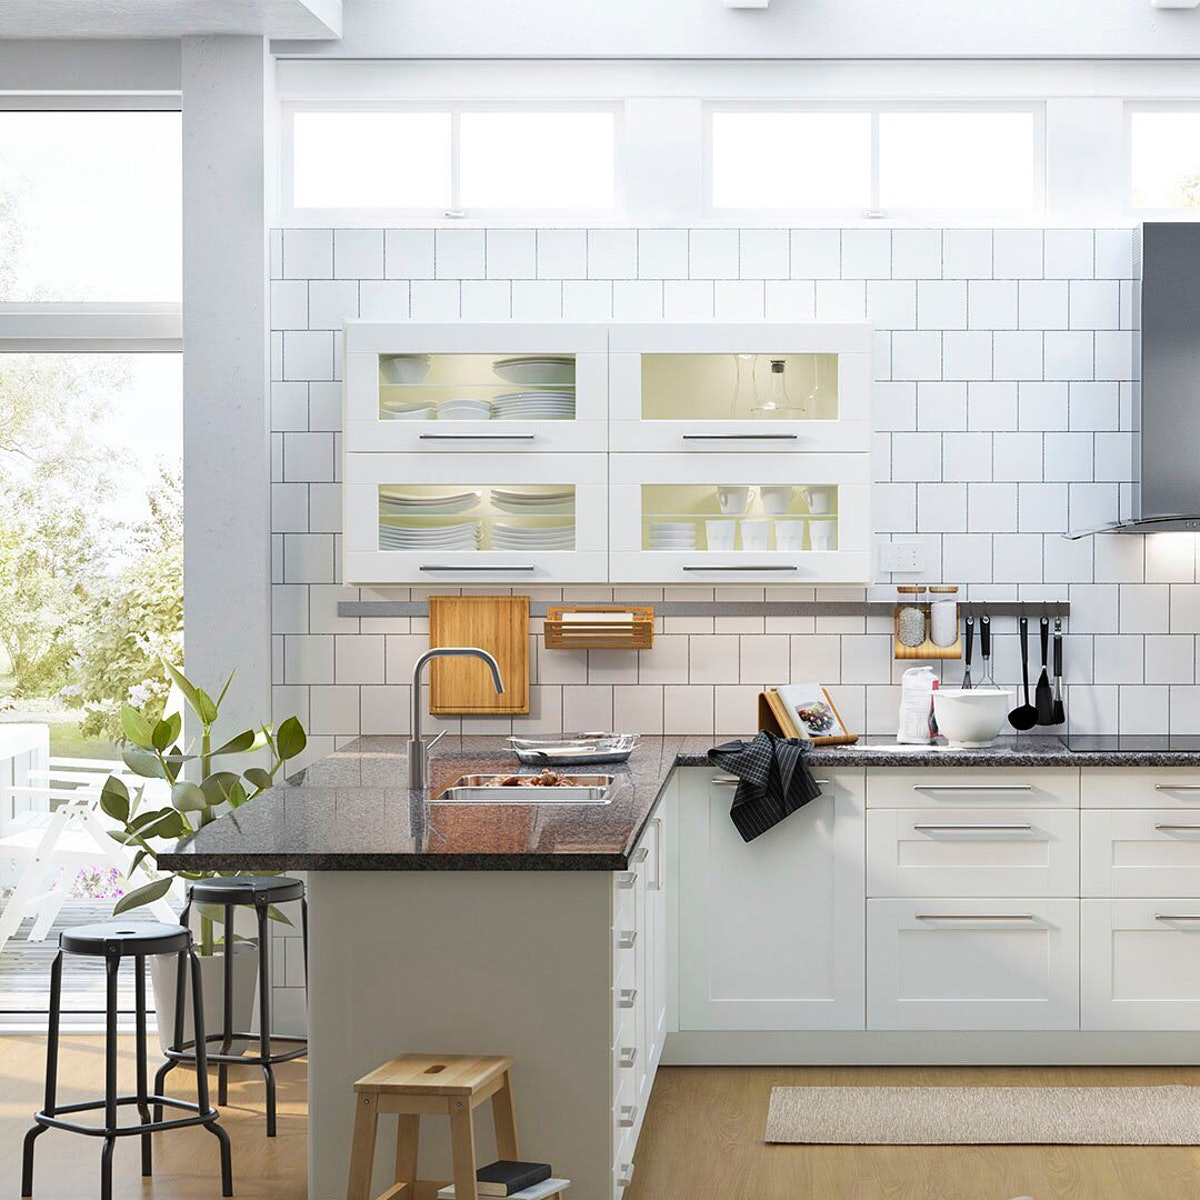 6 Easy IKEA Kitchen Hacks That Will Make Your Life So Much Easier